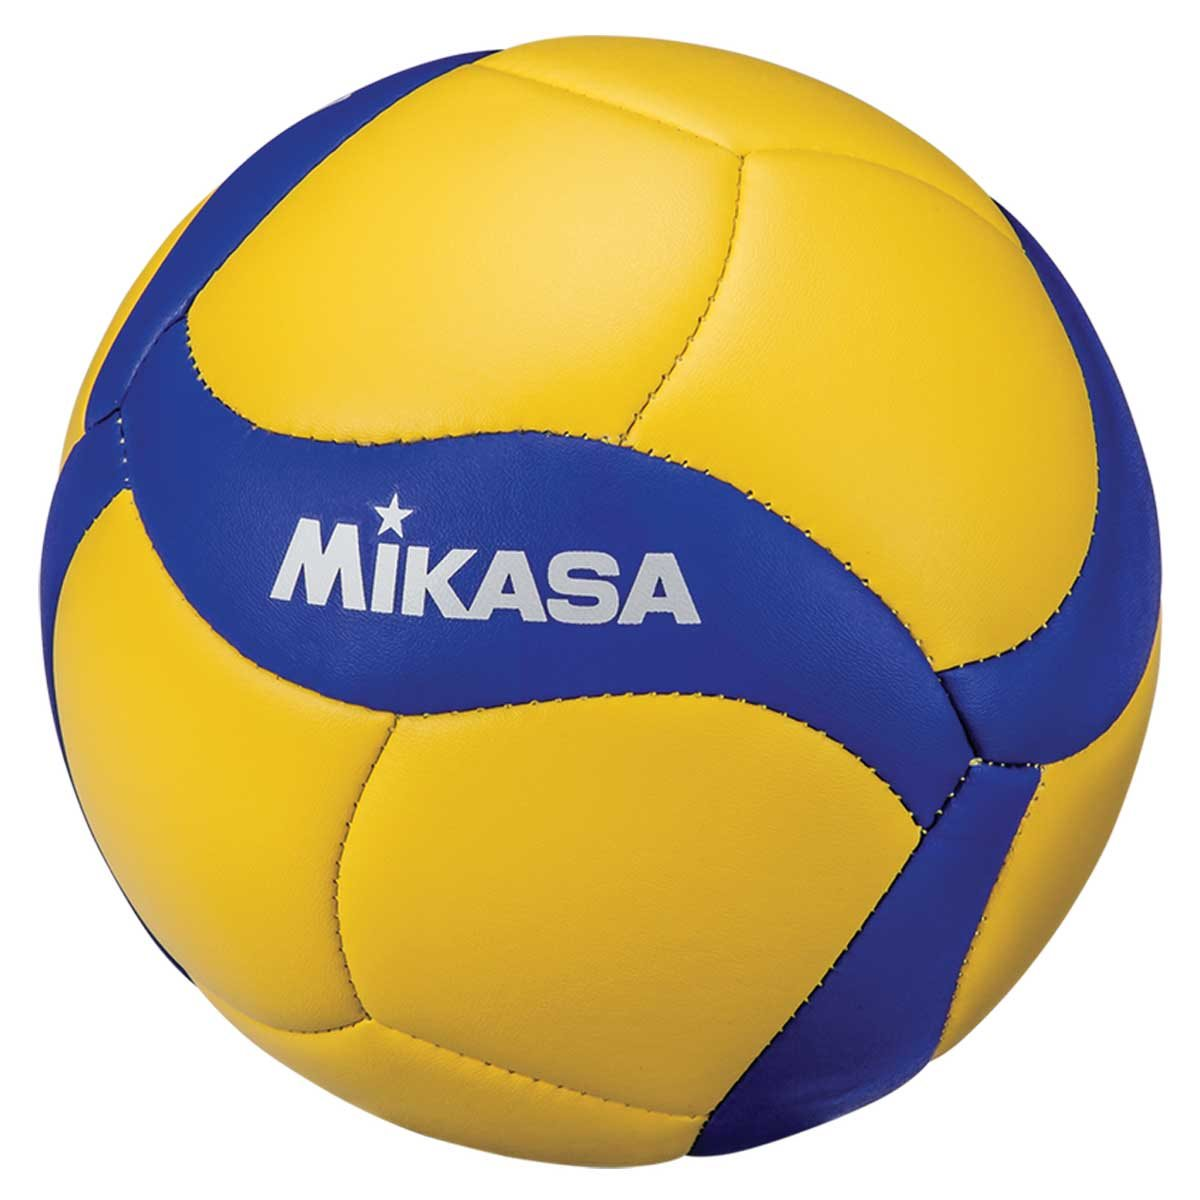 Mikasa Mini Replica of the 2020 Olympic Game Ball